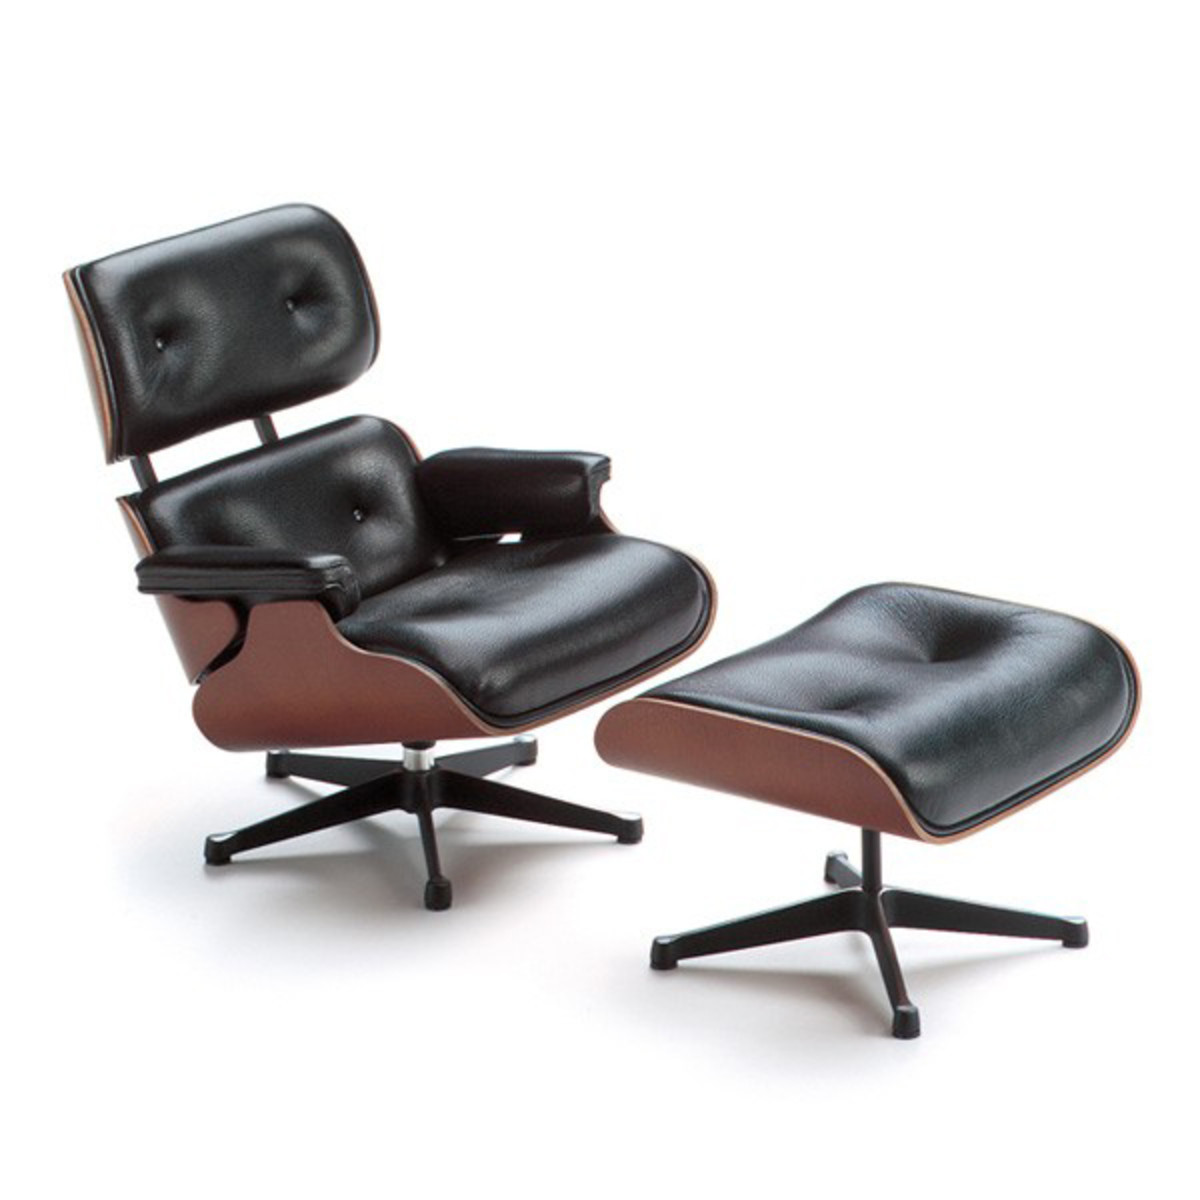 Earnes Lounge Chair photo - 6